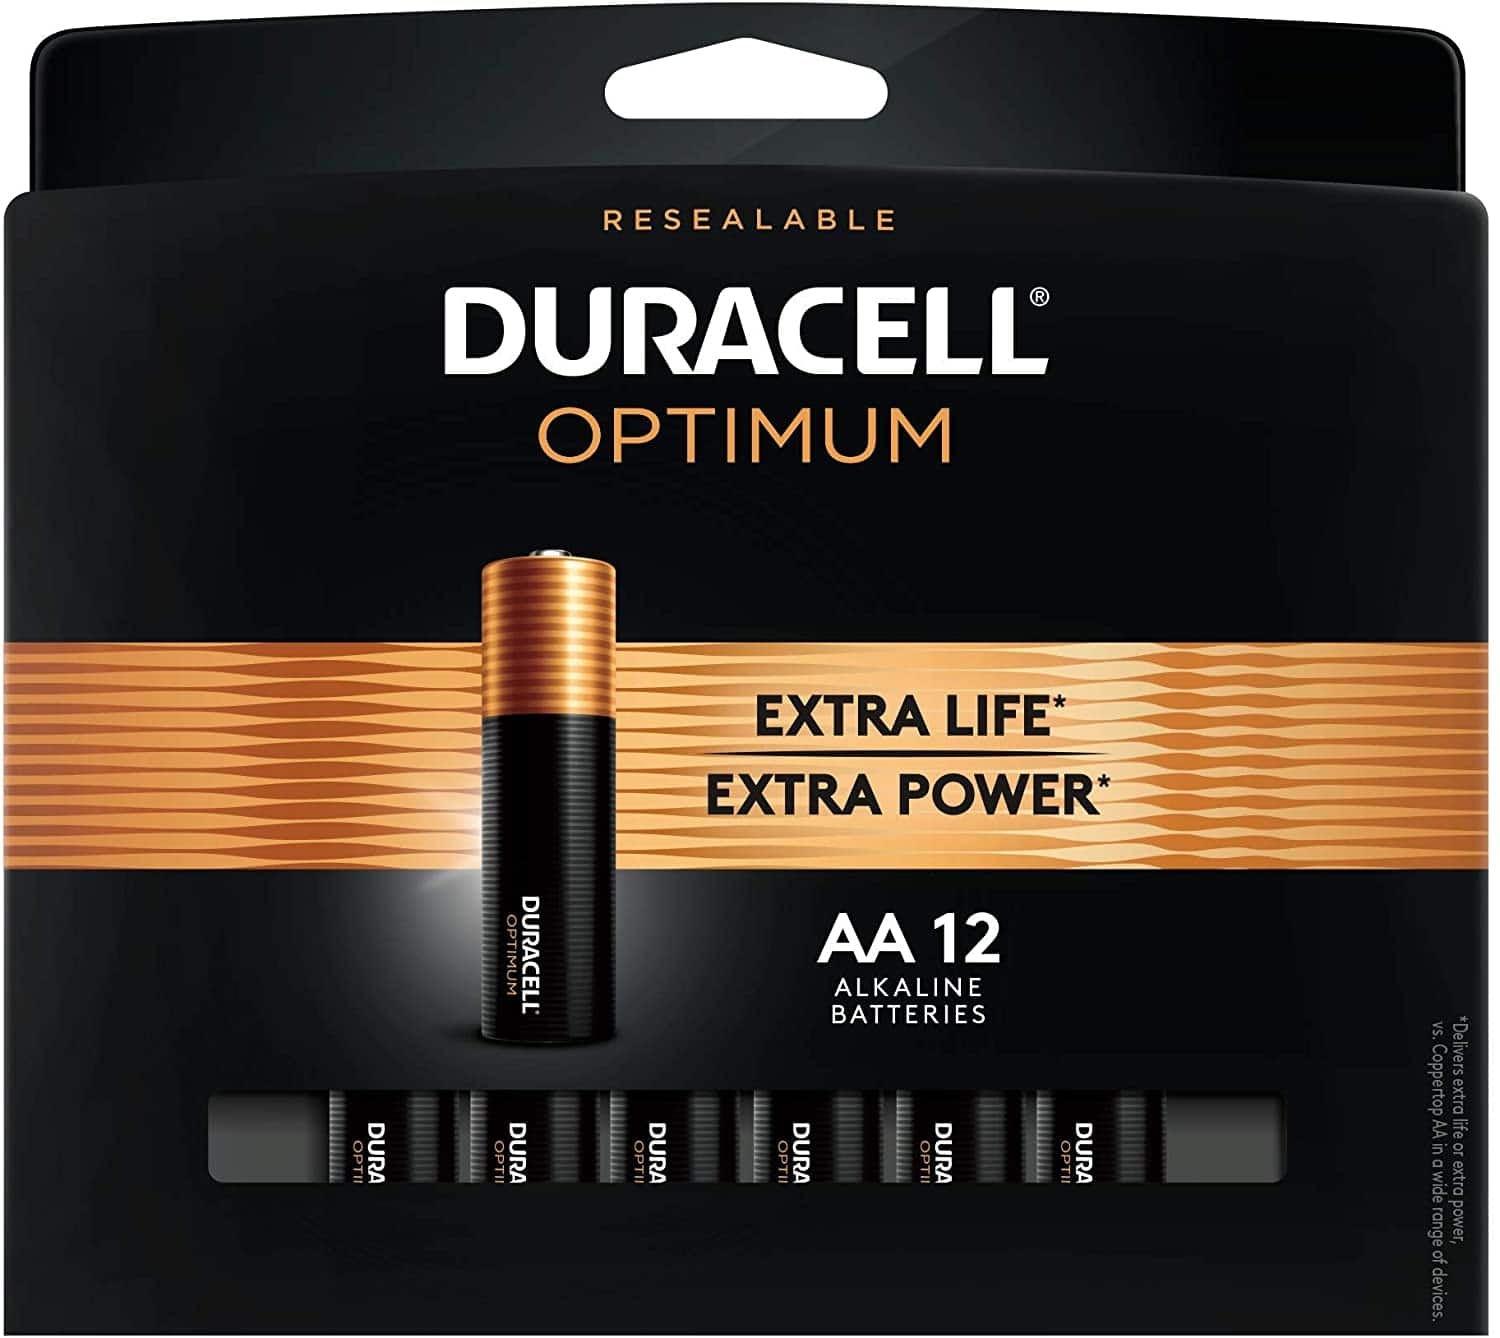 100% back in OD Rewards on Duracell Optimum AA or AAA12 pack